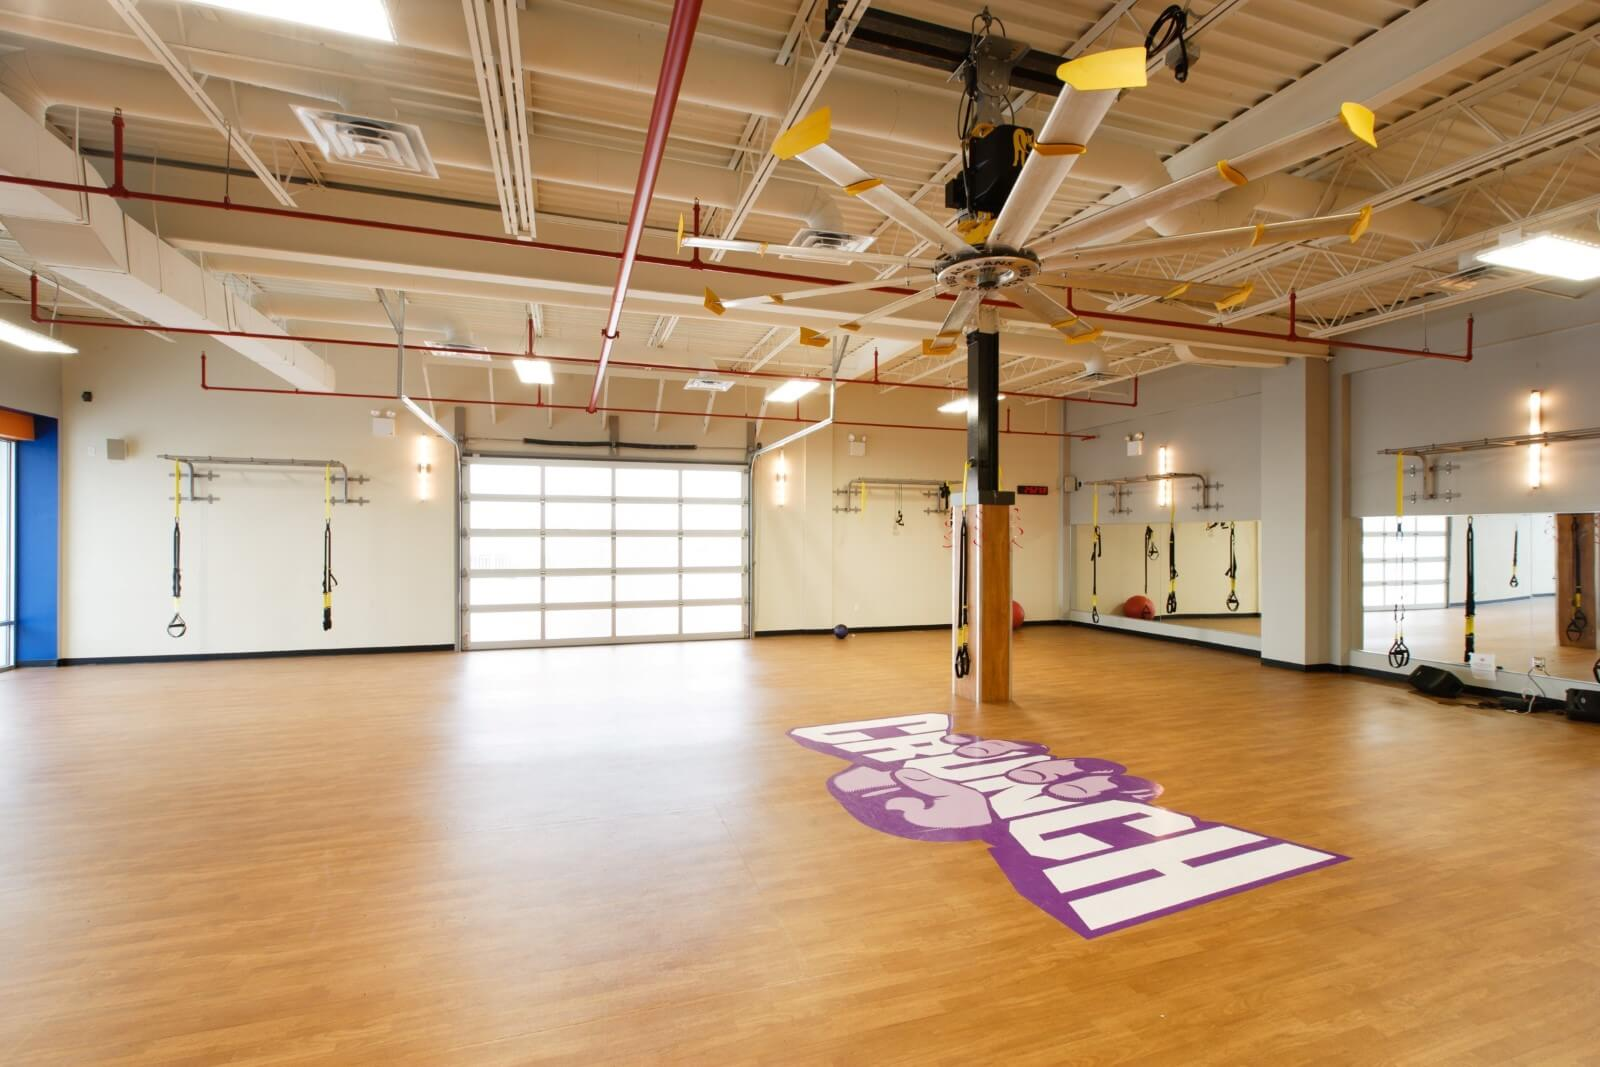 Crunch Fitness Staten Island Group Fitness Room Design42